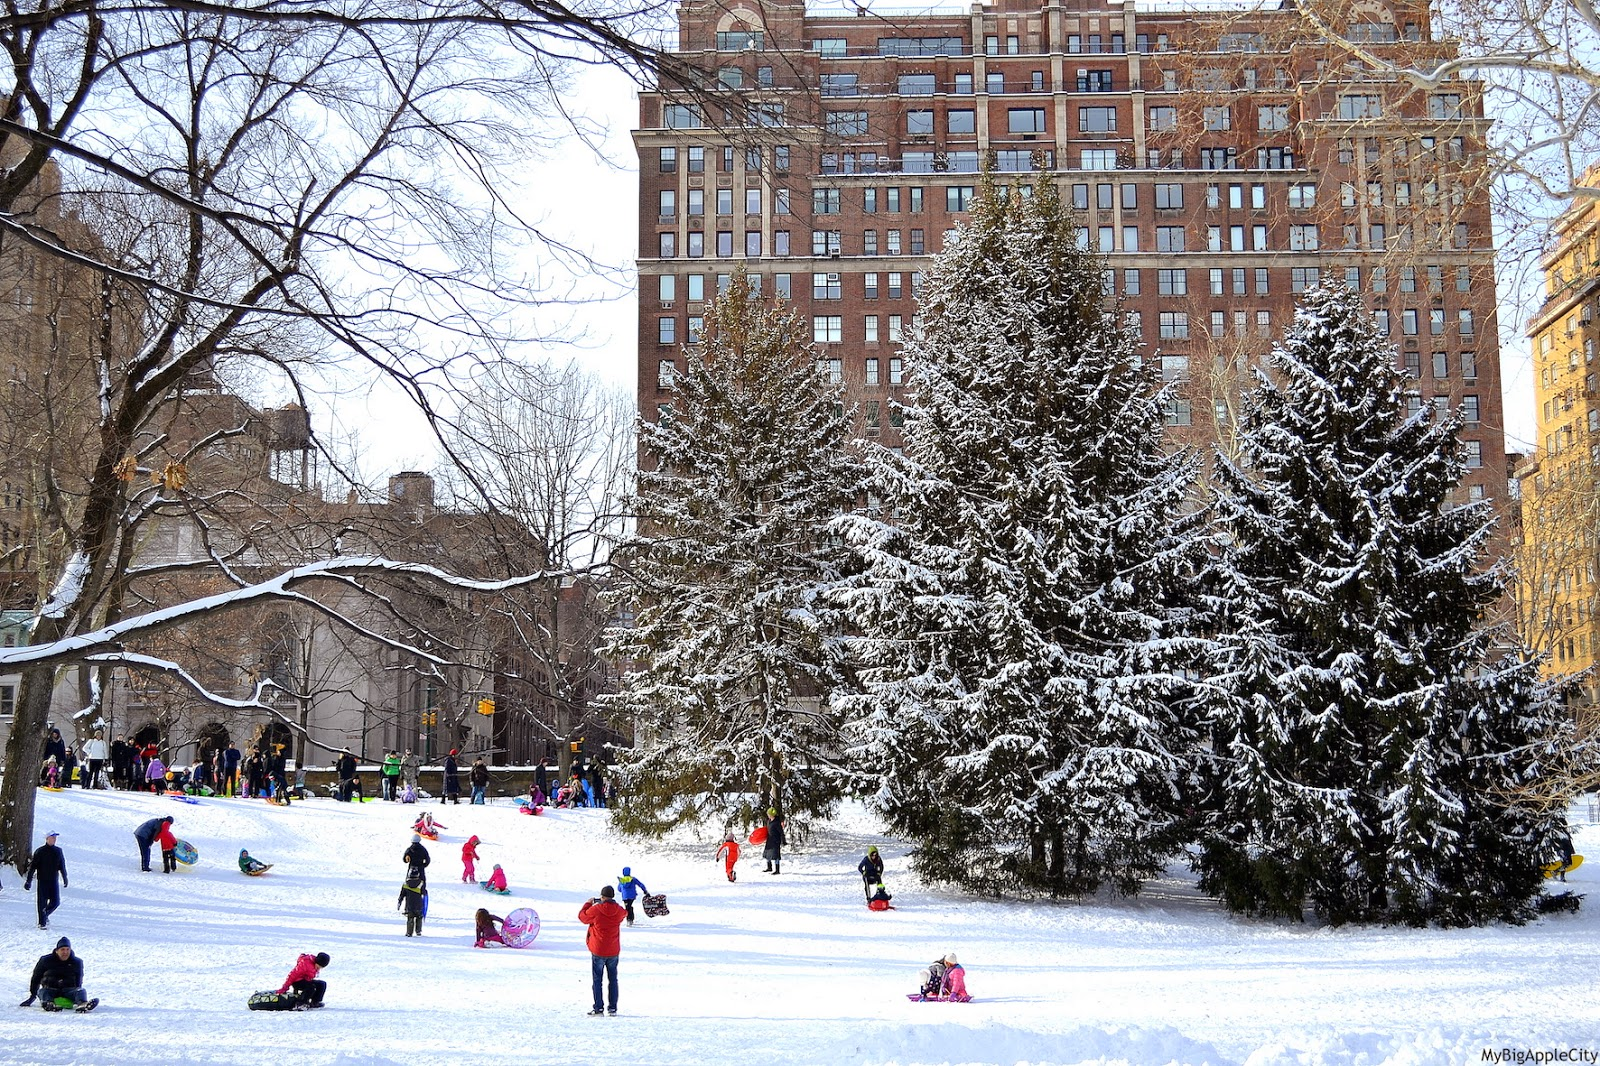 juno-2015-NYC-Blizzard-Central-Park-New-York